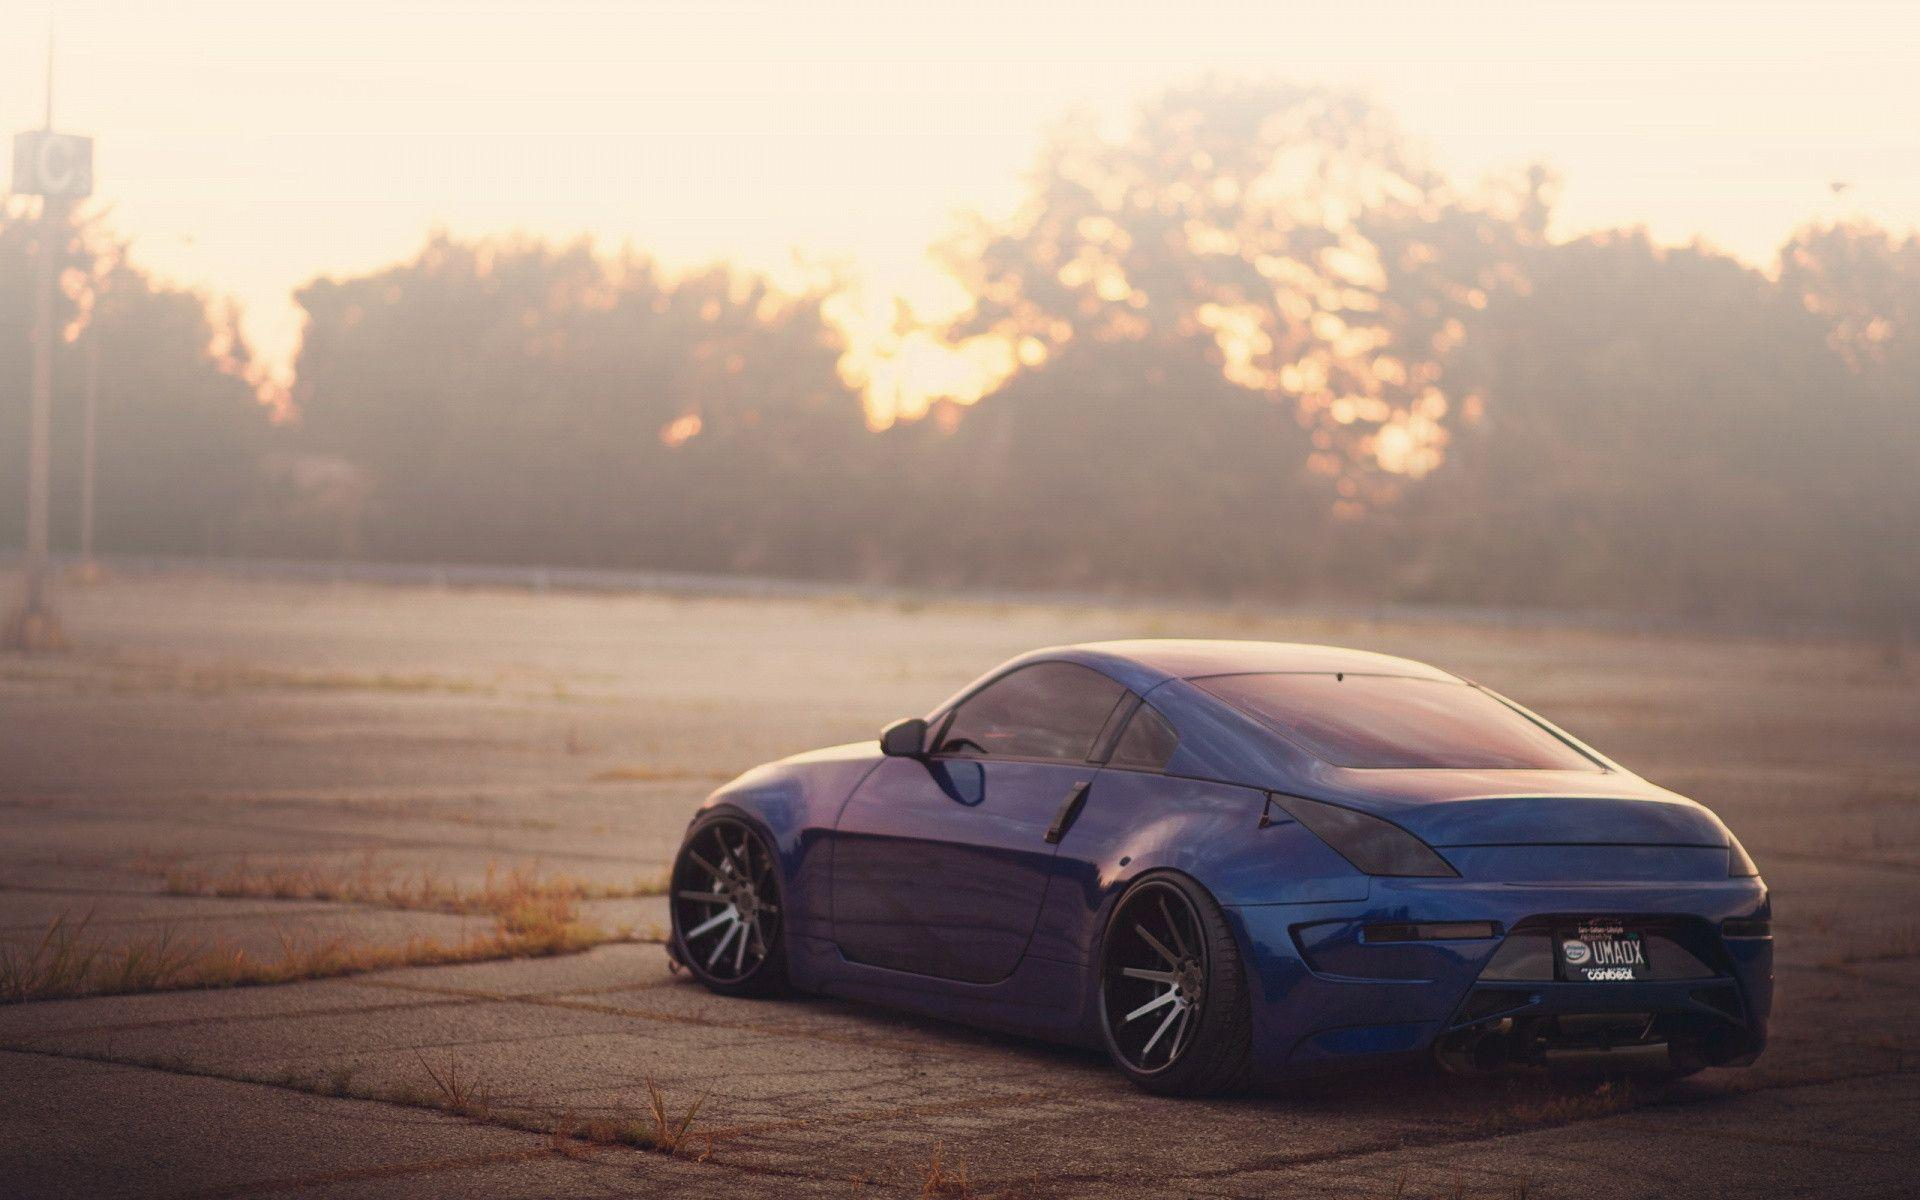 The Wallpaper Above Is Nissan 350z Modified Wallpaper In ...